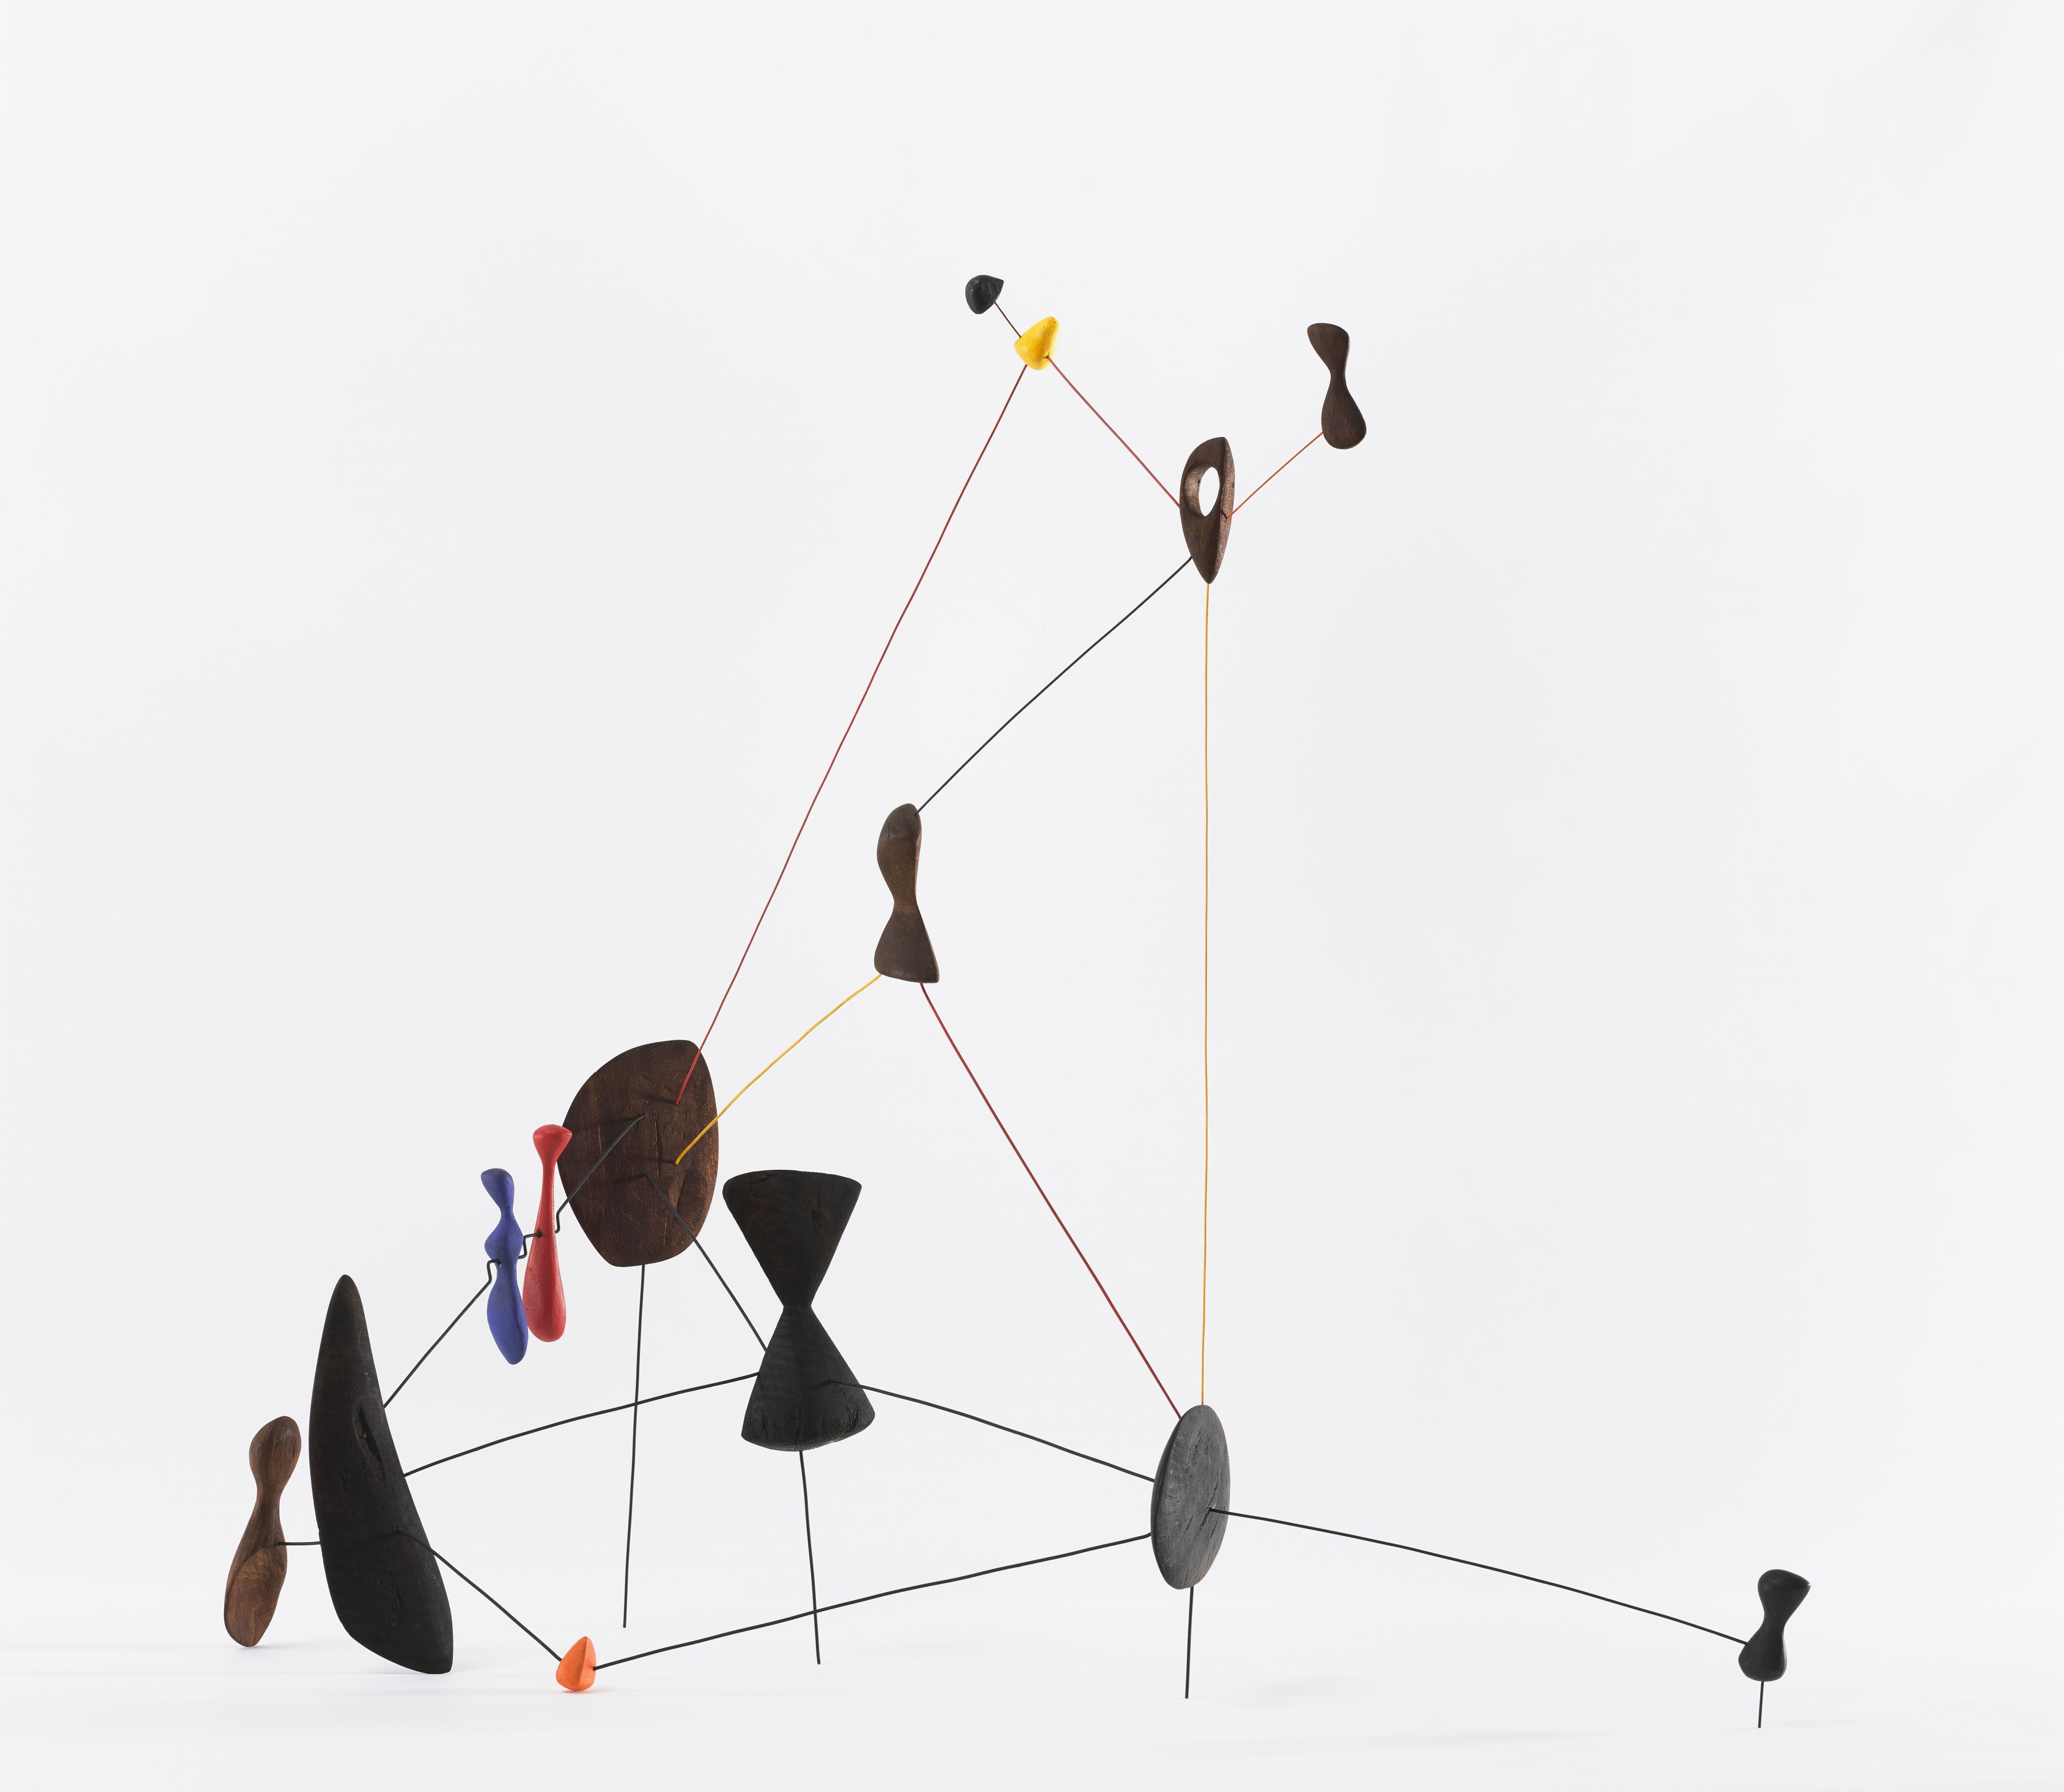 Alexander Calder,Constellation, 1943, Wood, wire and paint